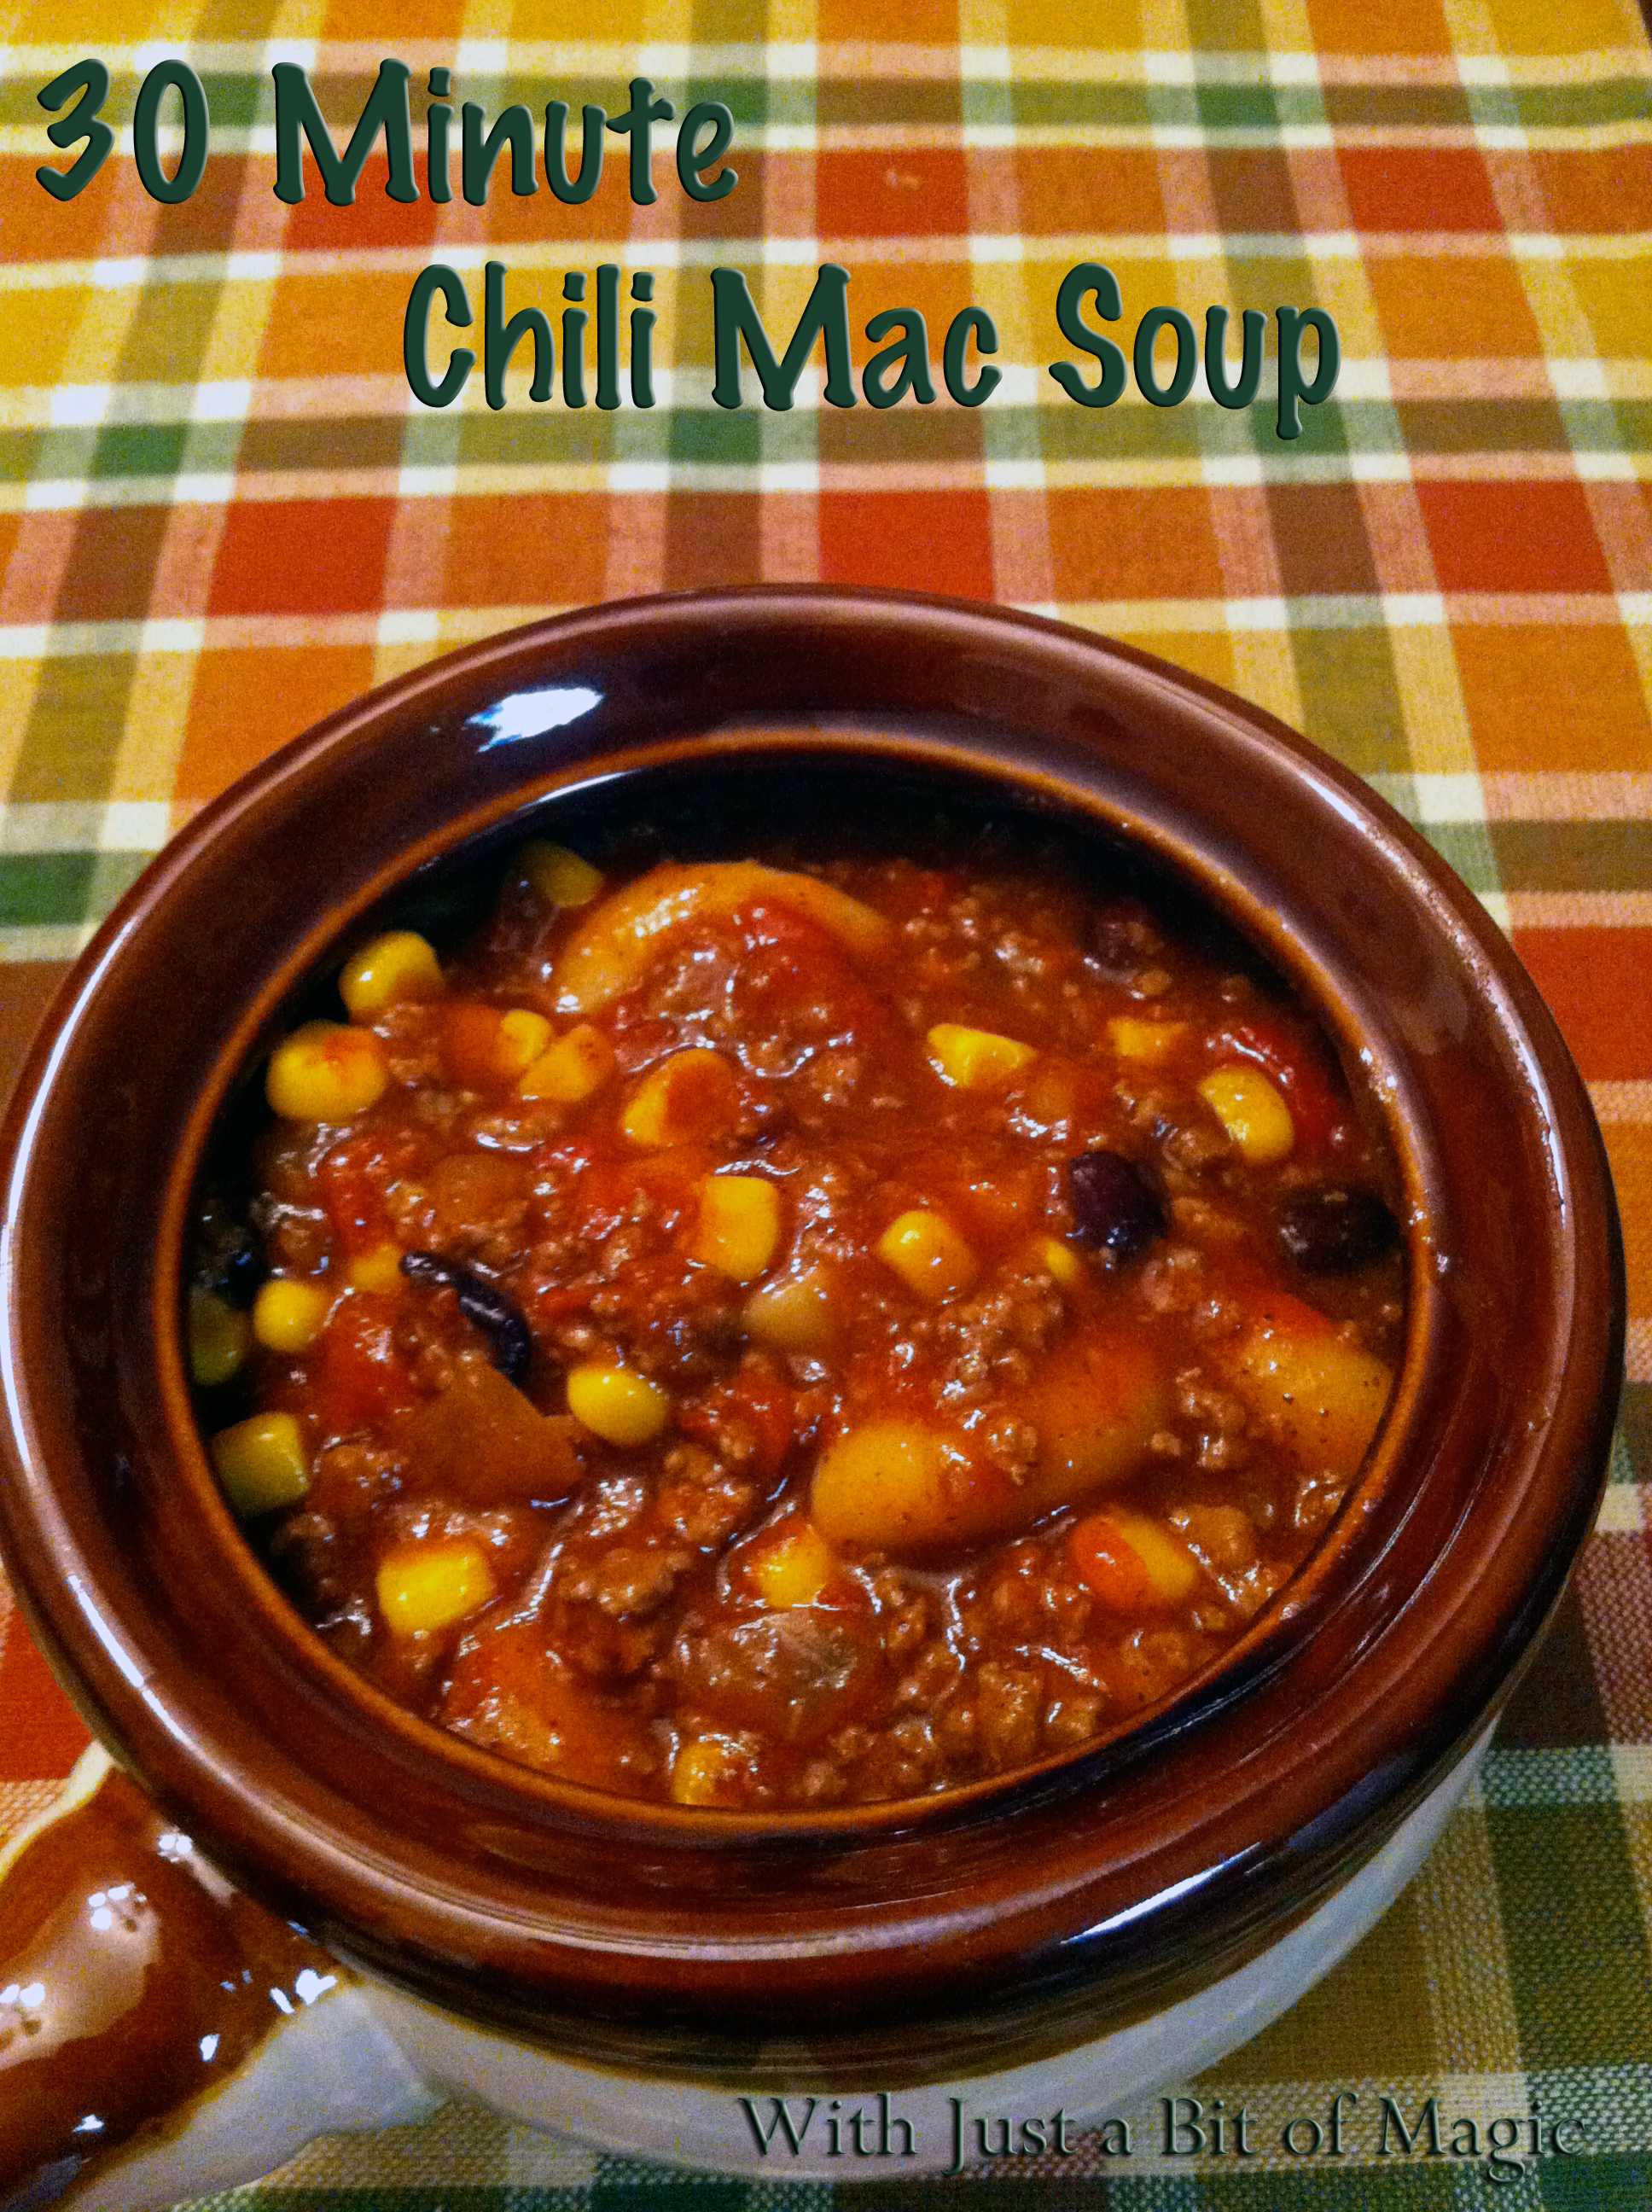 Monday Menu ~ 30 minute chili mac soup - With Just a Bit of Magic